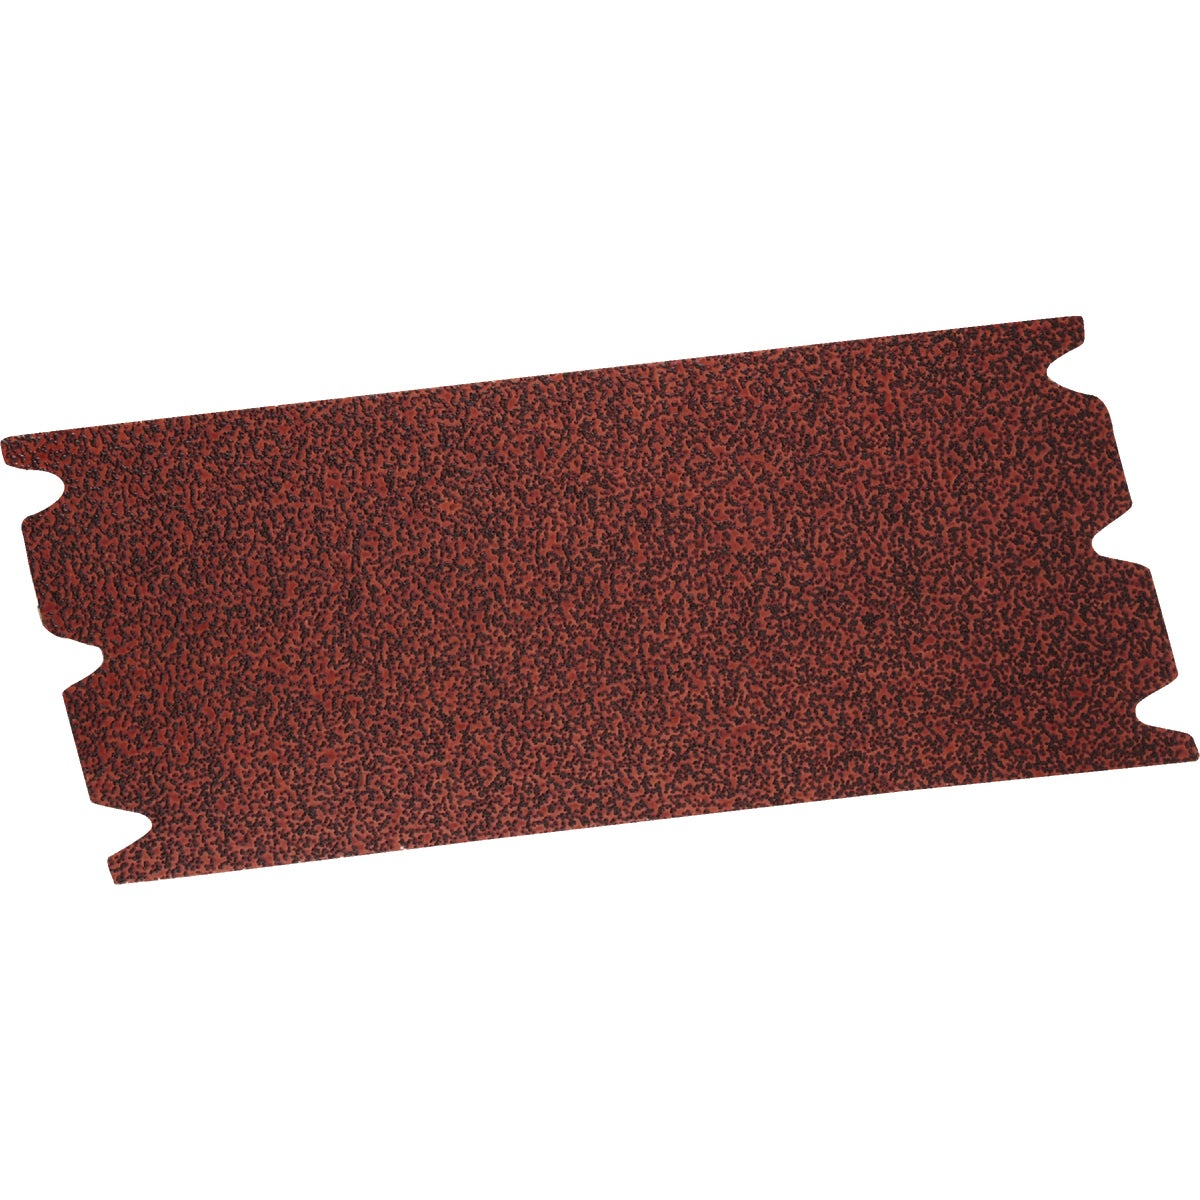 36G FLOOR SANDING SHEET - 002-808036 by Virginia Abrasives